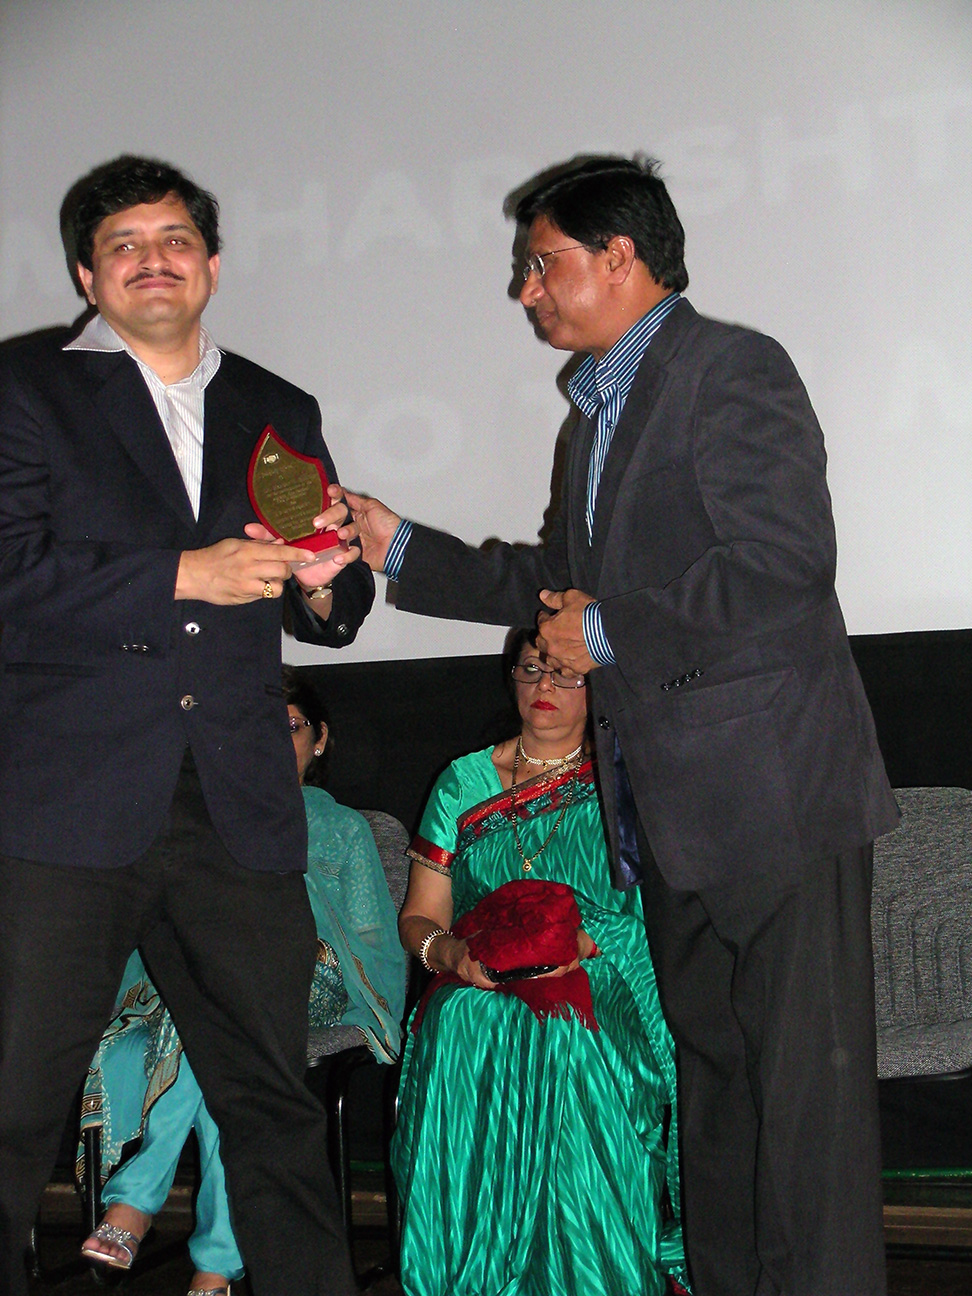 Receiving a memento from Minister Choonee